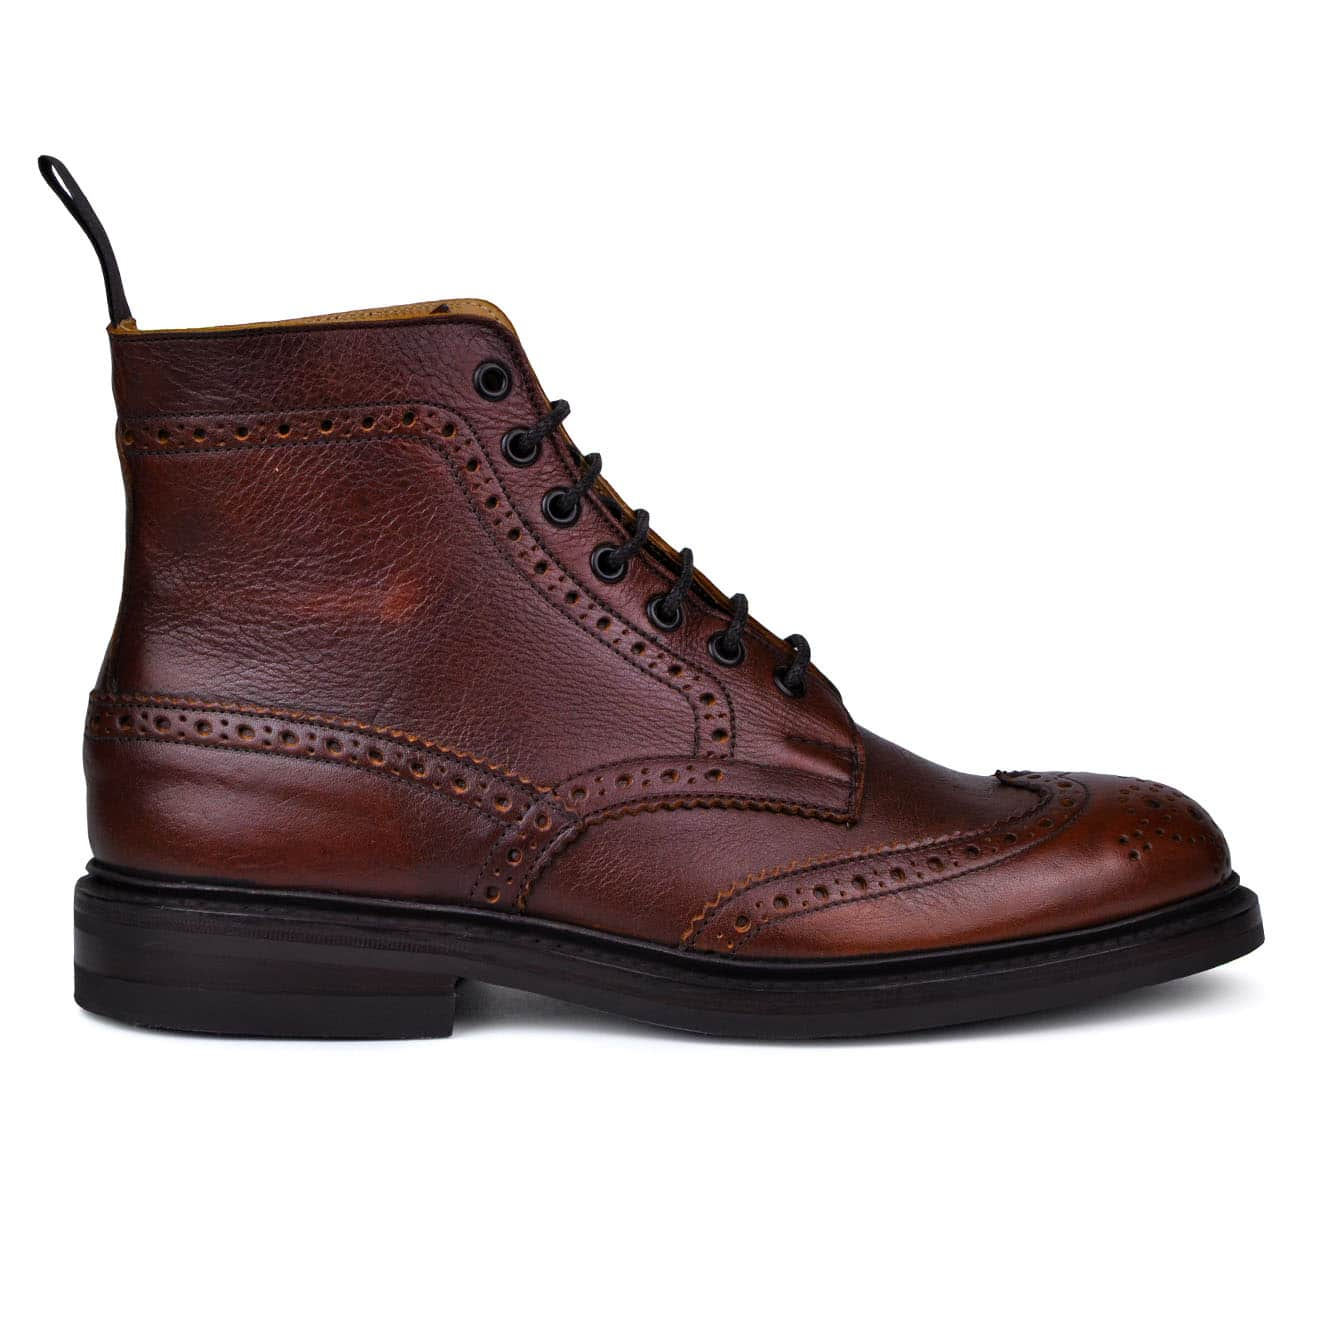 Trickers Stow Brogue Boot Dainite Sole